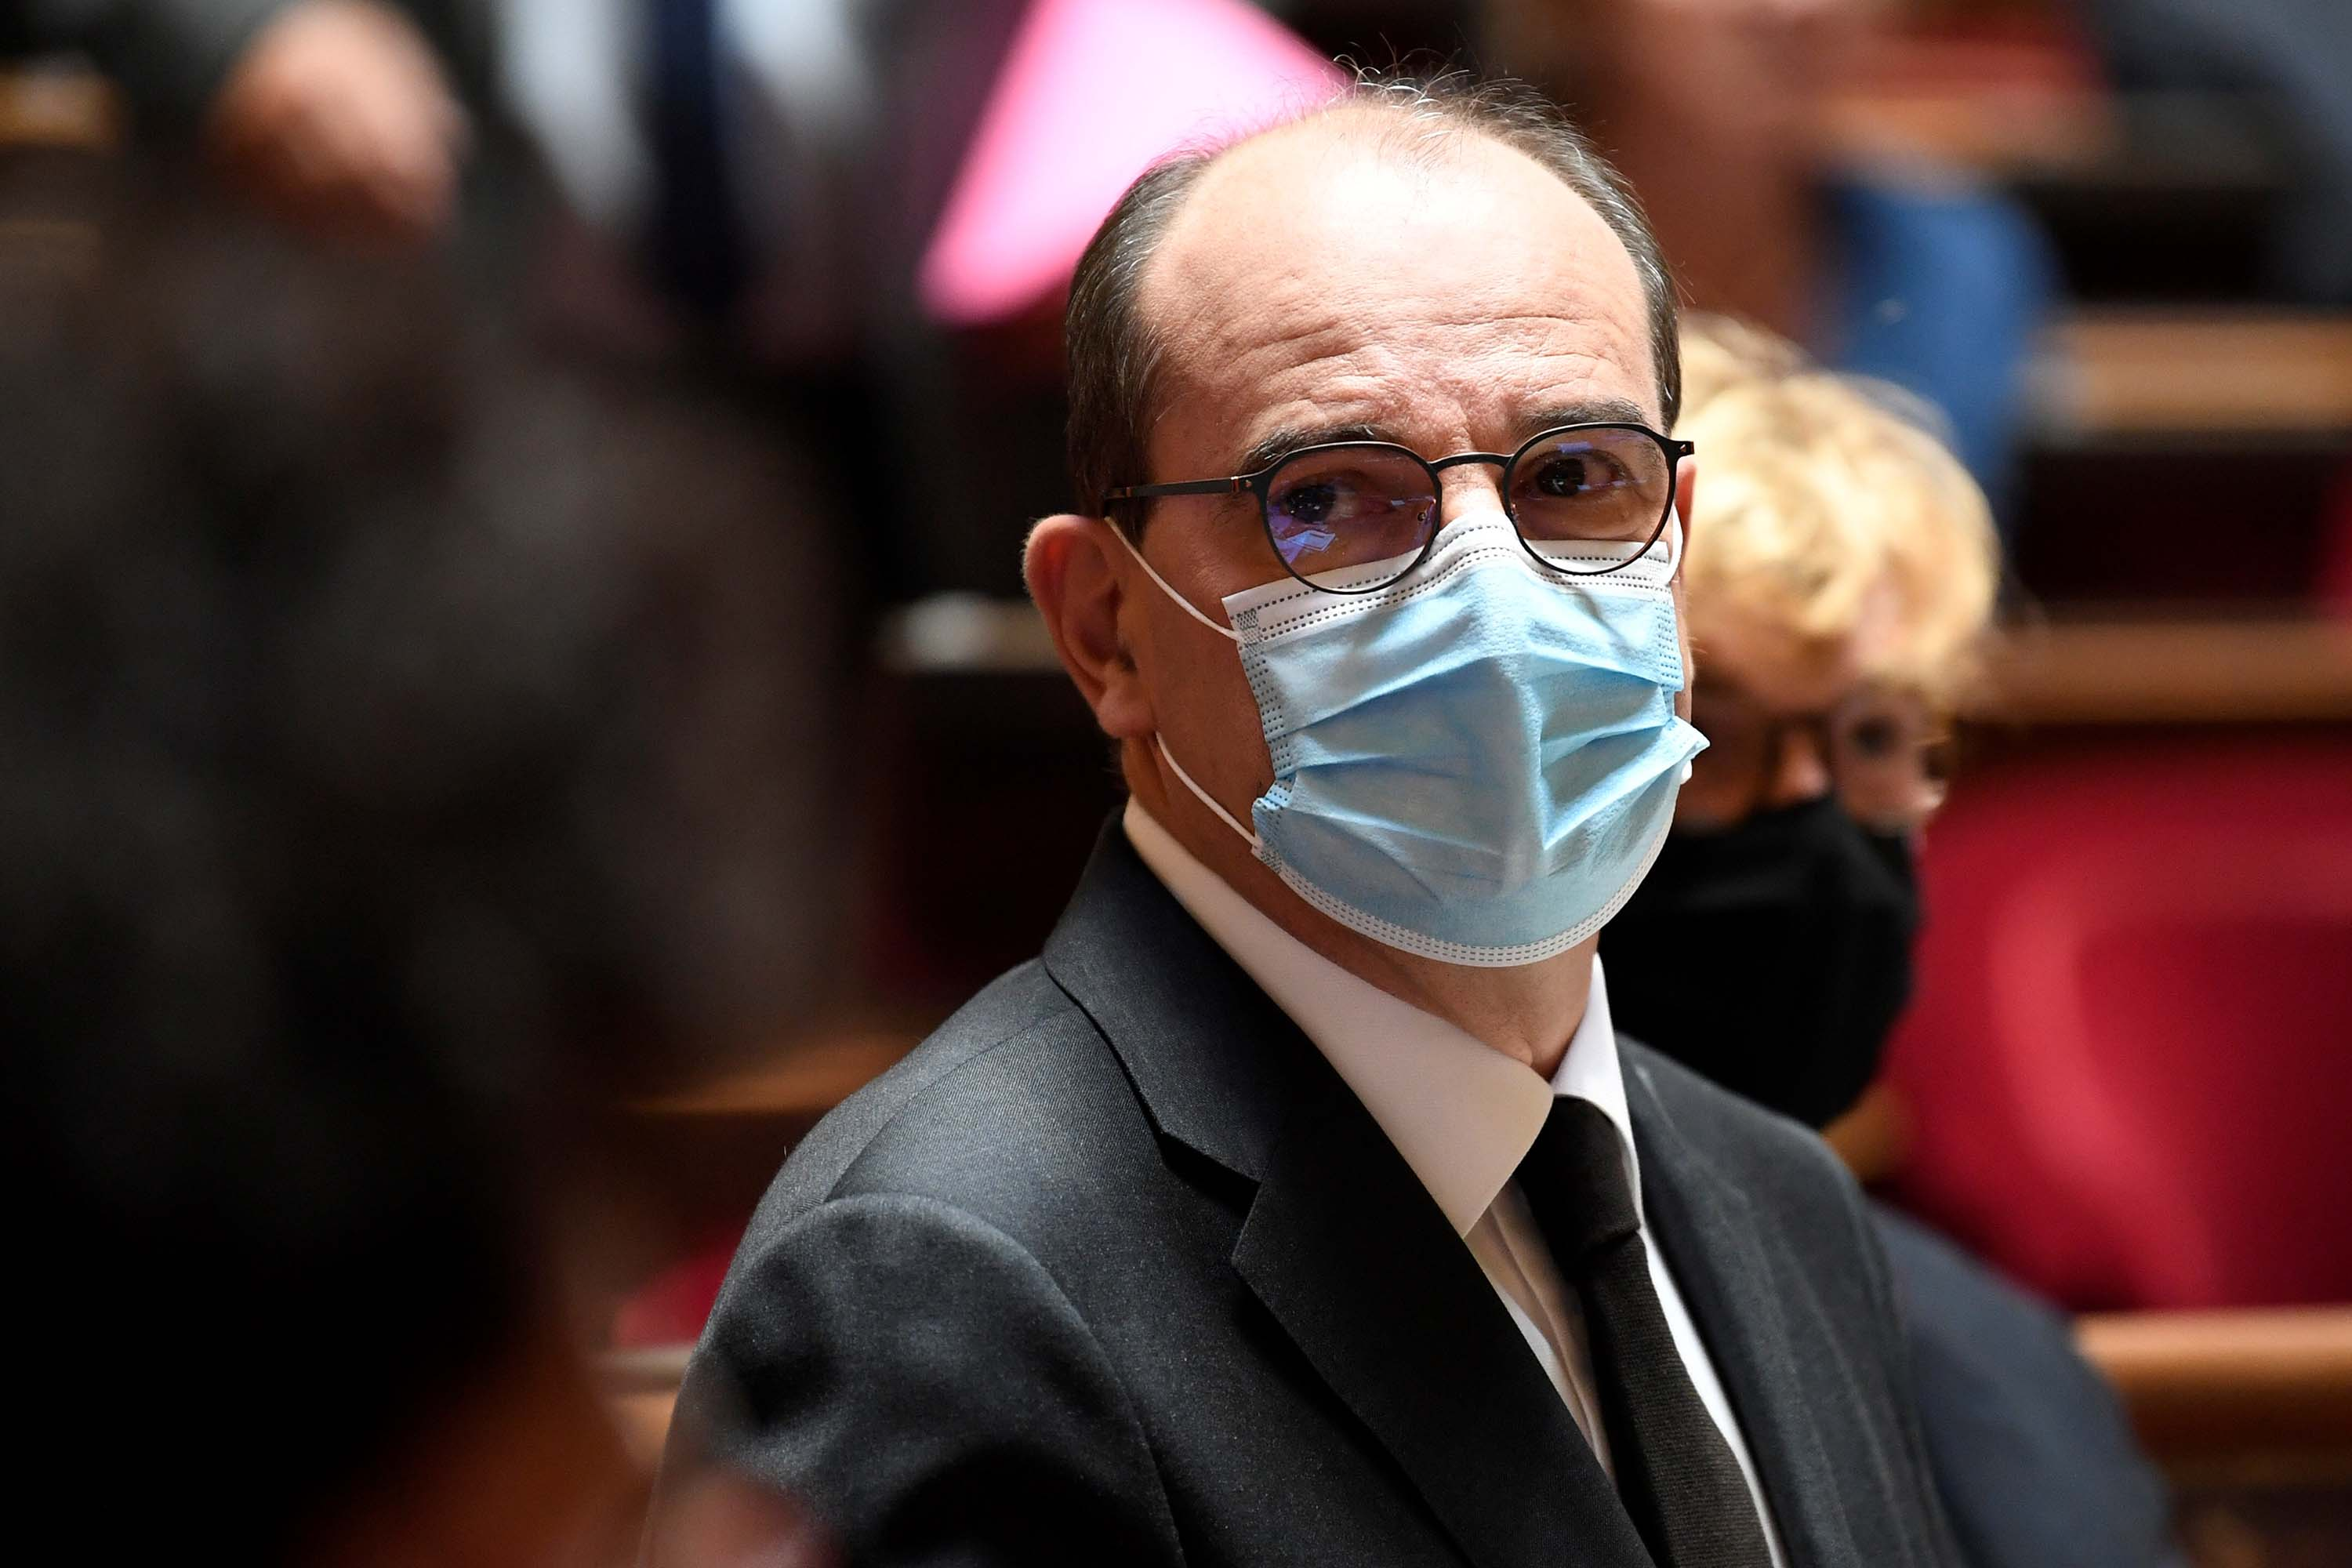 French Prime Minister Jean Castex wears a protective face mask at the French Senate in Paris, on Thursday, July 16.